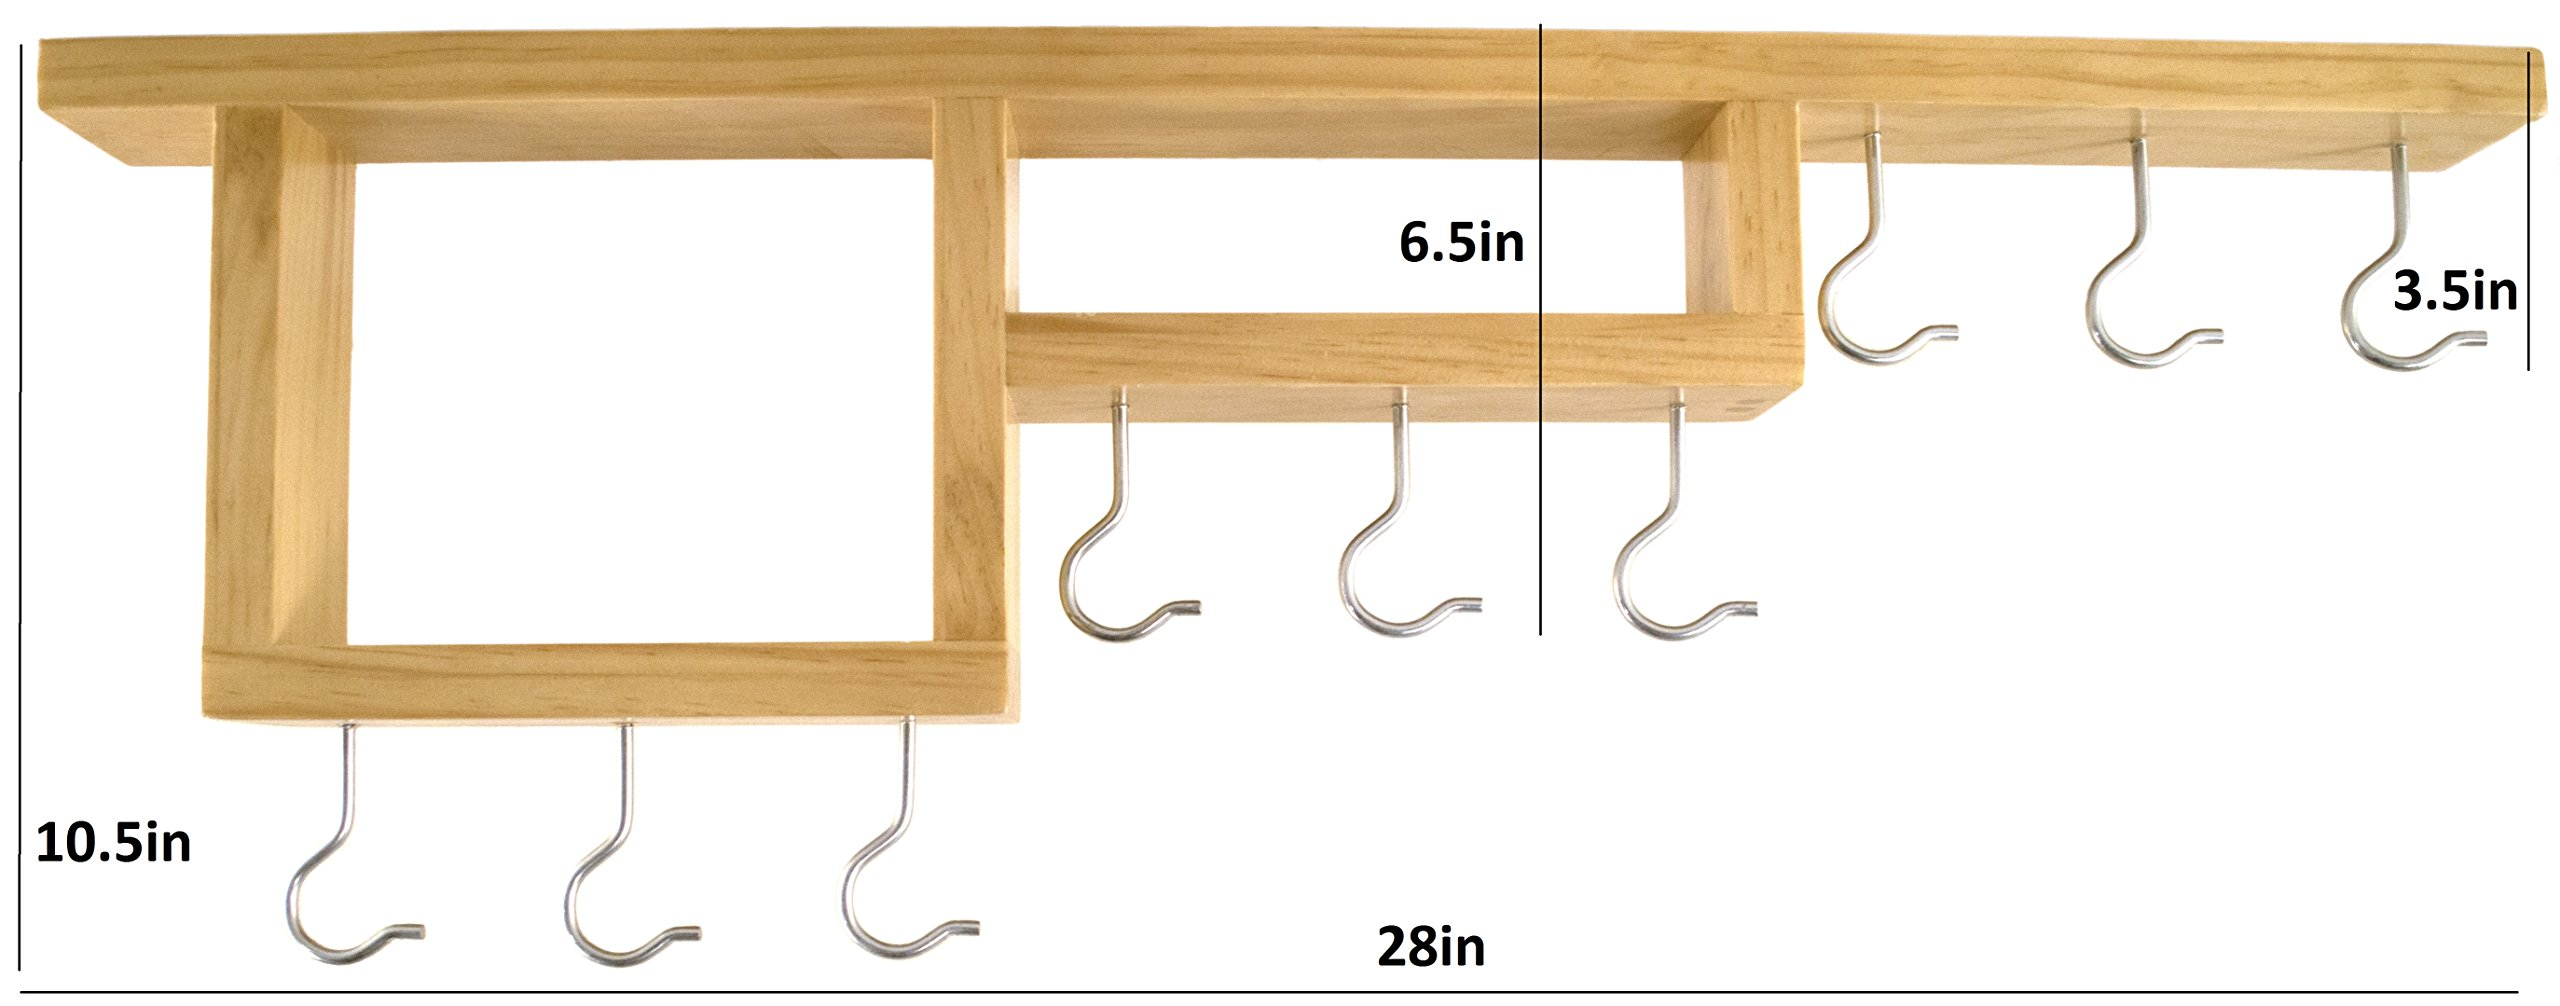 Pot Rack: Easy to Reach Ceiling Mount Solid-Wood Pan Hanger by HomeHarmony by HomeHarmony (Image #7)